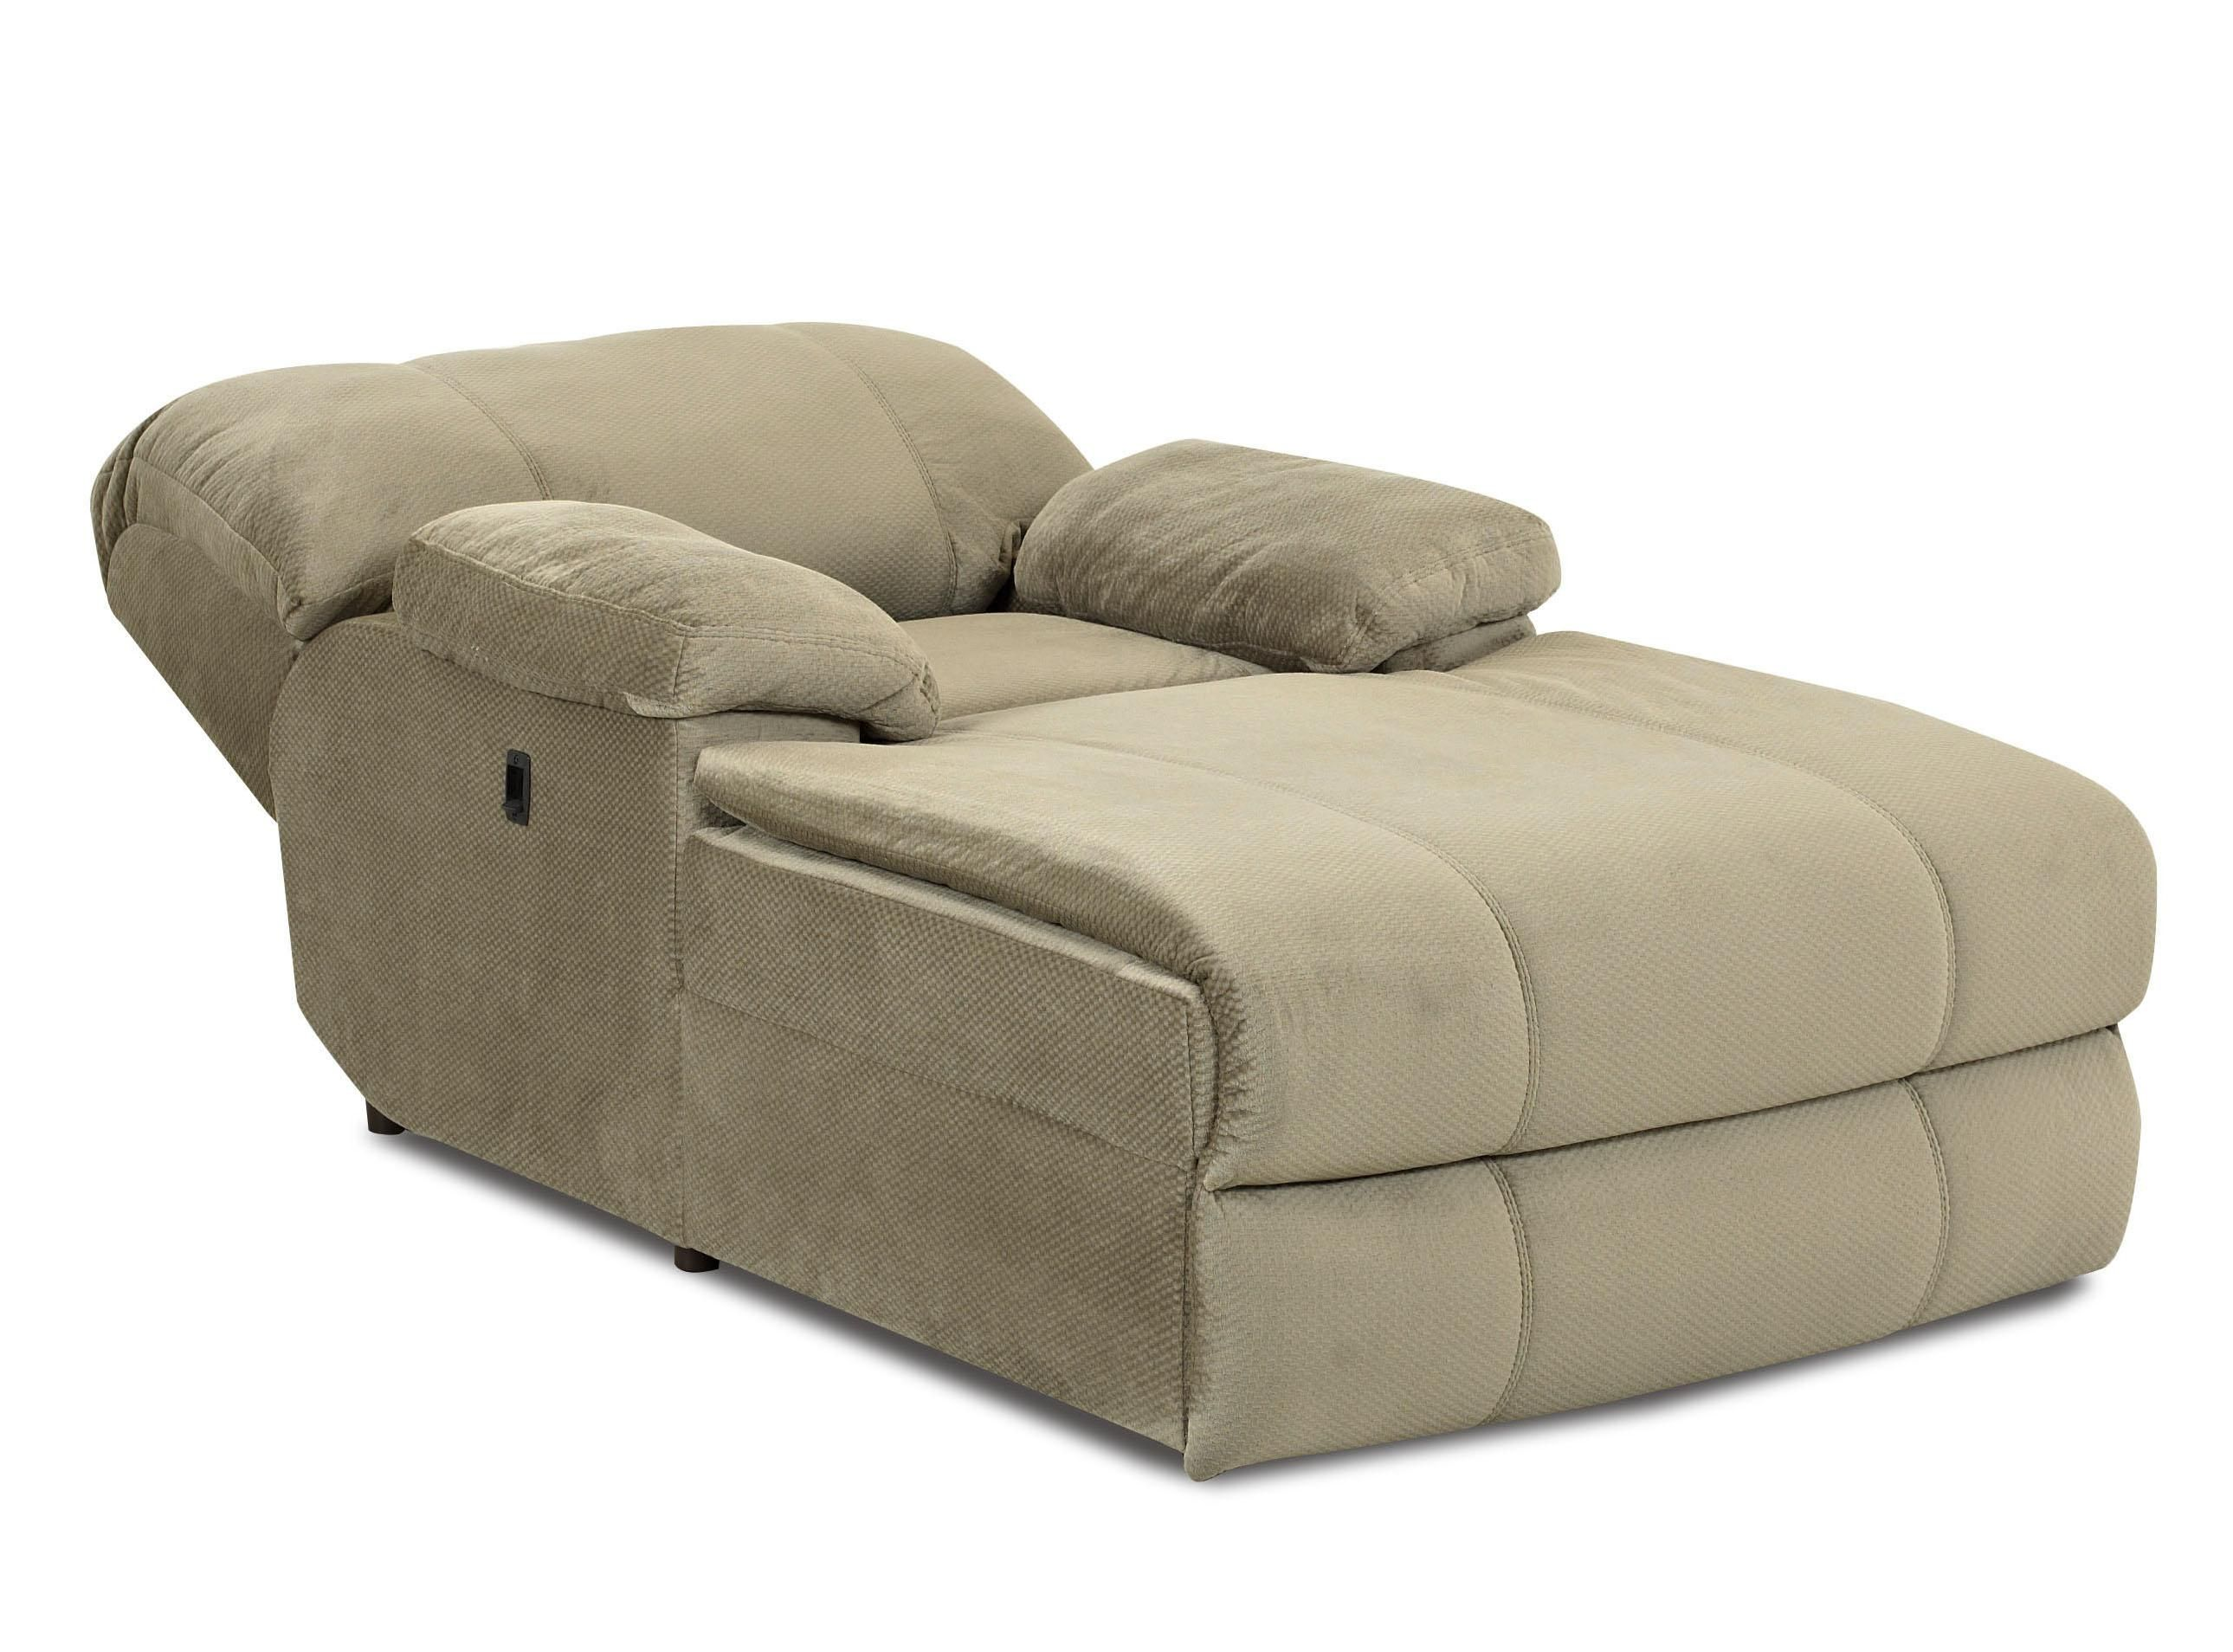 chaise recliner sofa roxbury burlap indoor oversized lounge kensington reclining